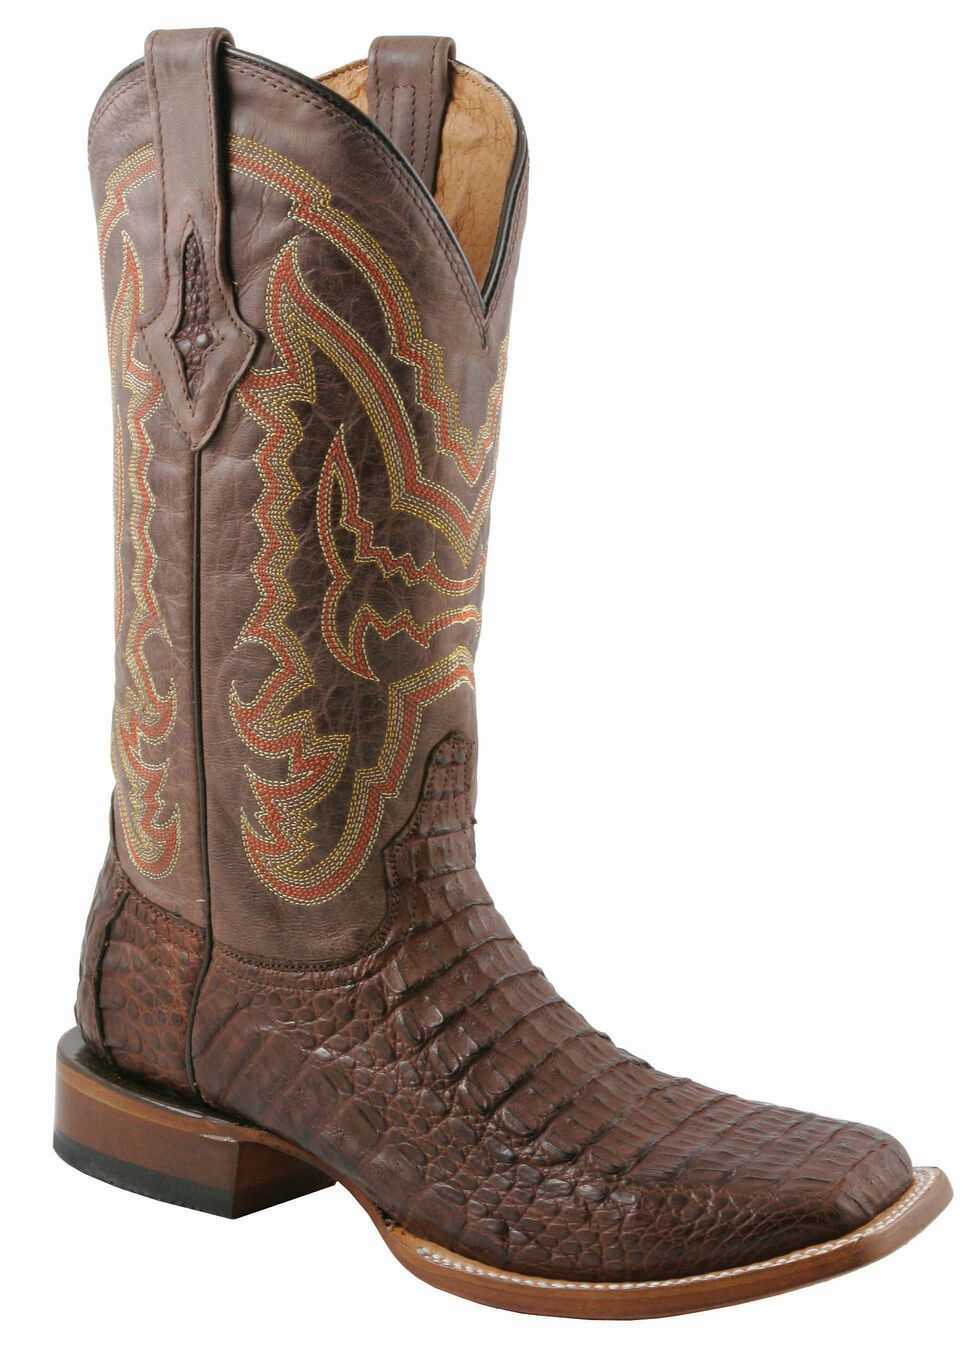 Lucchese Handcrafted 1883 Hornback Caiman Cowboy Boots - Square Toe, Cigar, hi-res